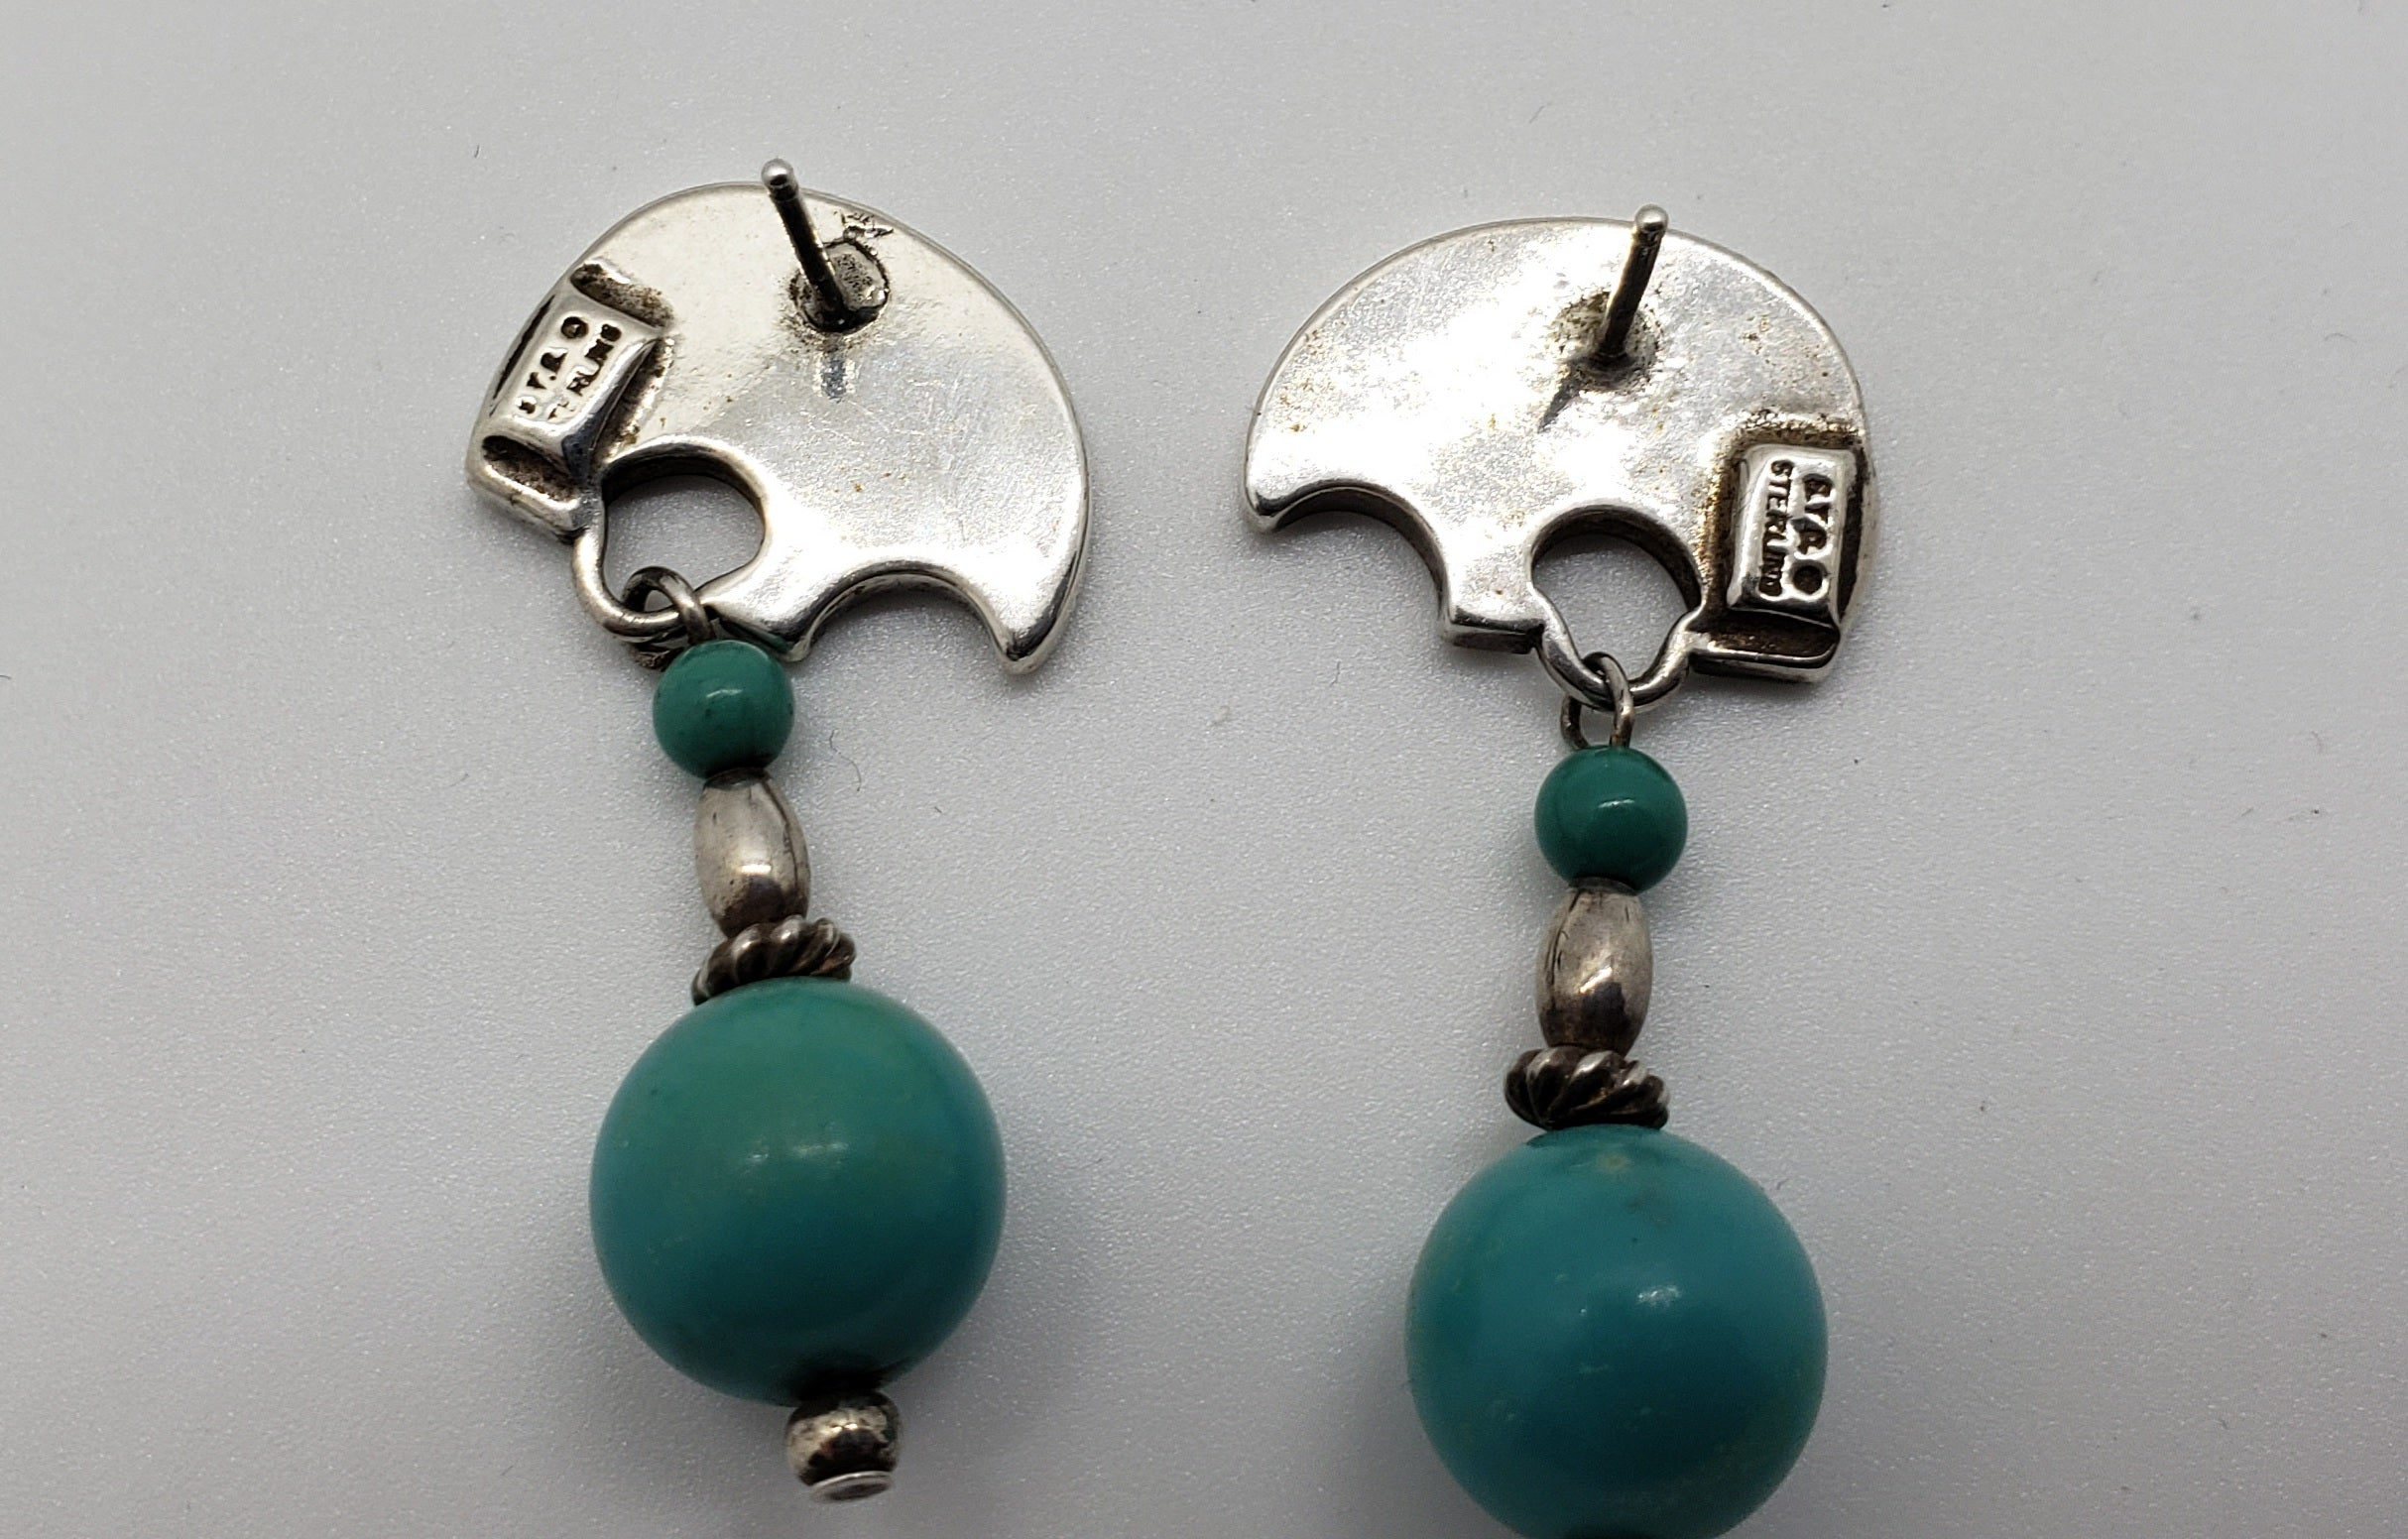 Stylized Sterling Silver Bear Earrings with Turquoise Drops - Macomb County ReStores